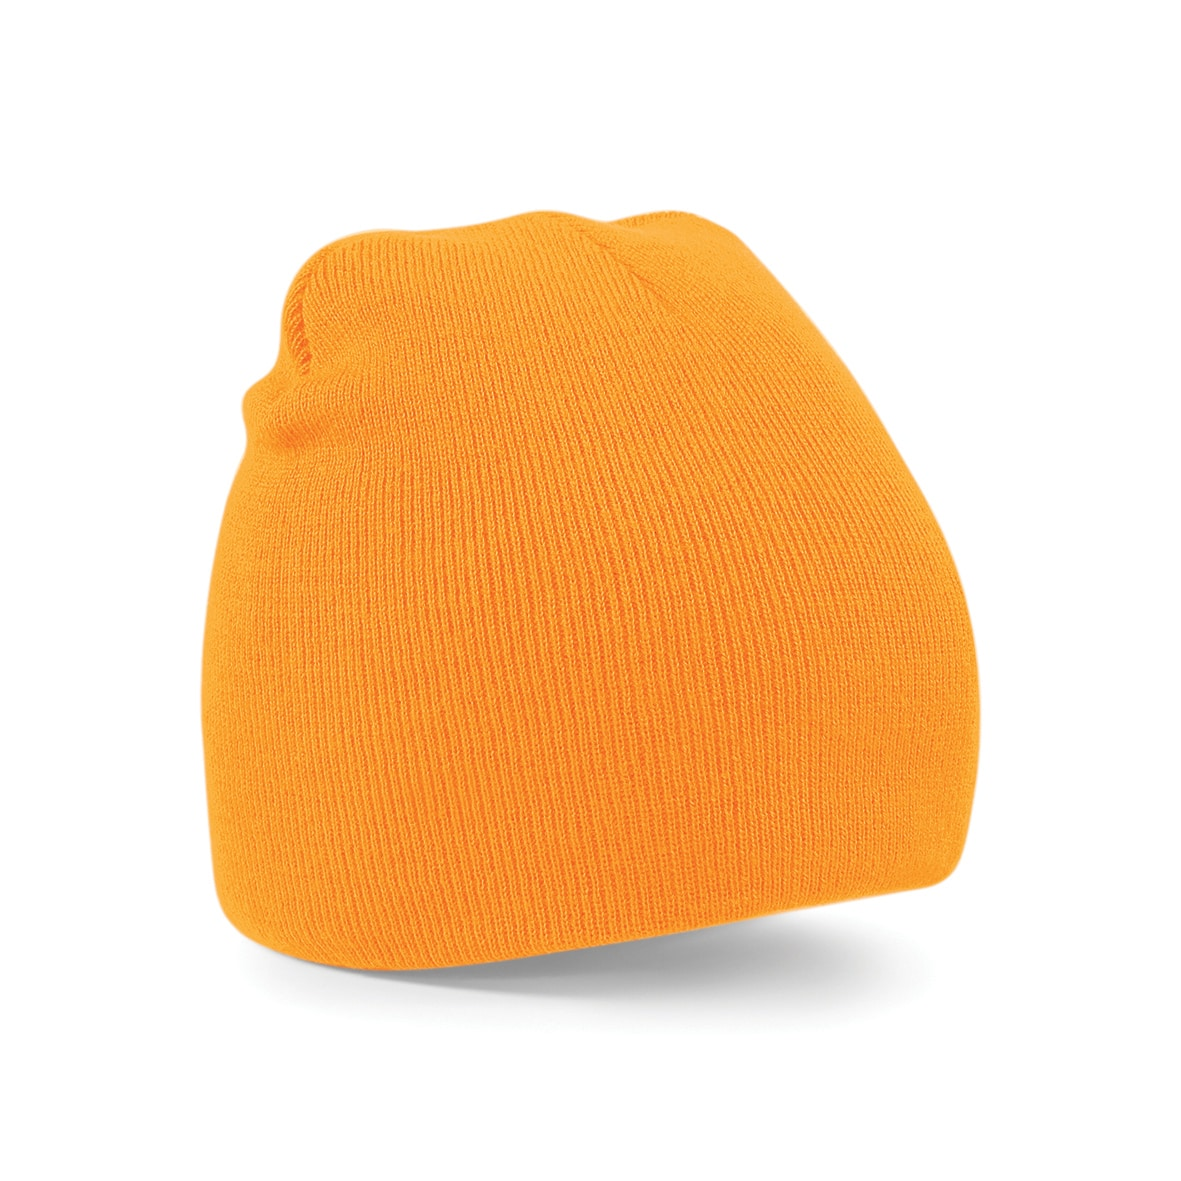 Fluorescent Orange Embroidered Personalised Beanies from Jageto Embroidery and Print in Essex, UK